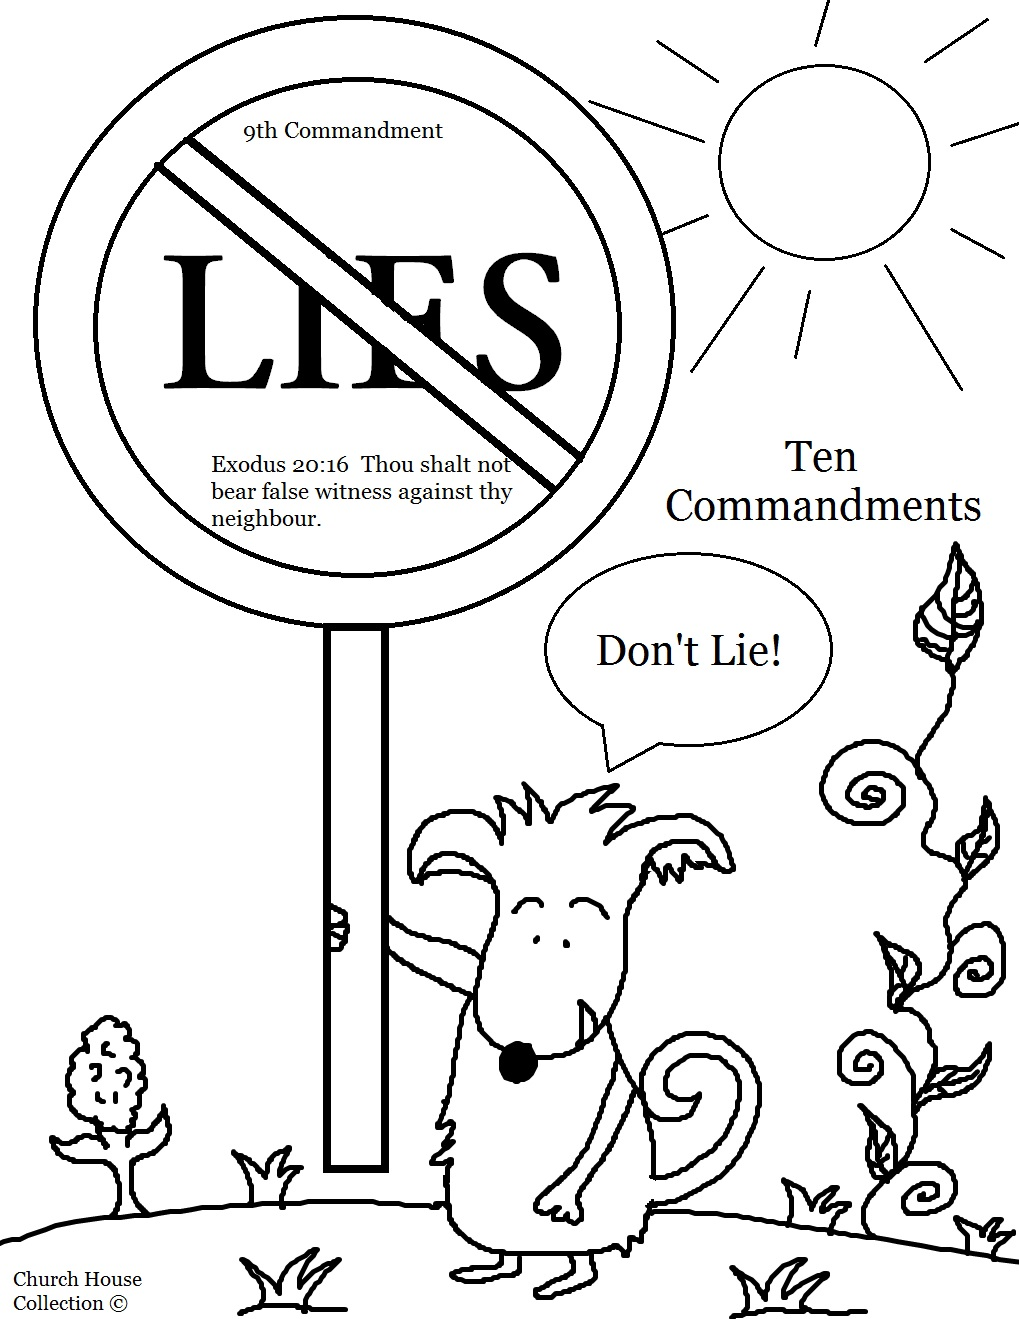 10 Commandments Coloring Pages